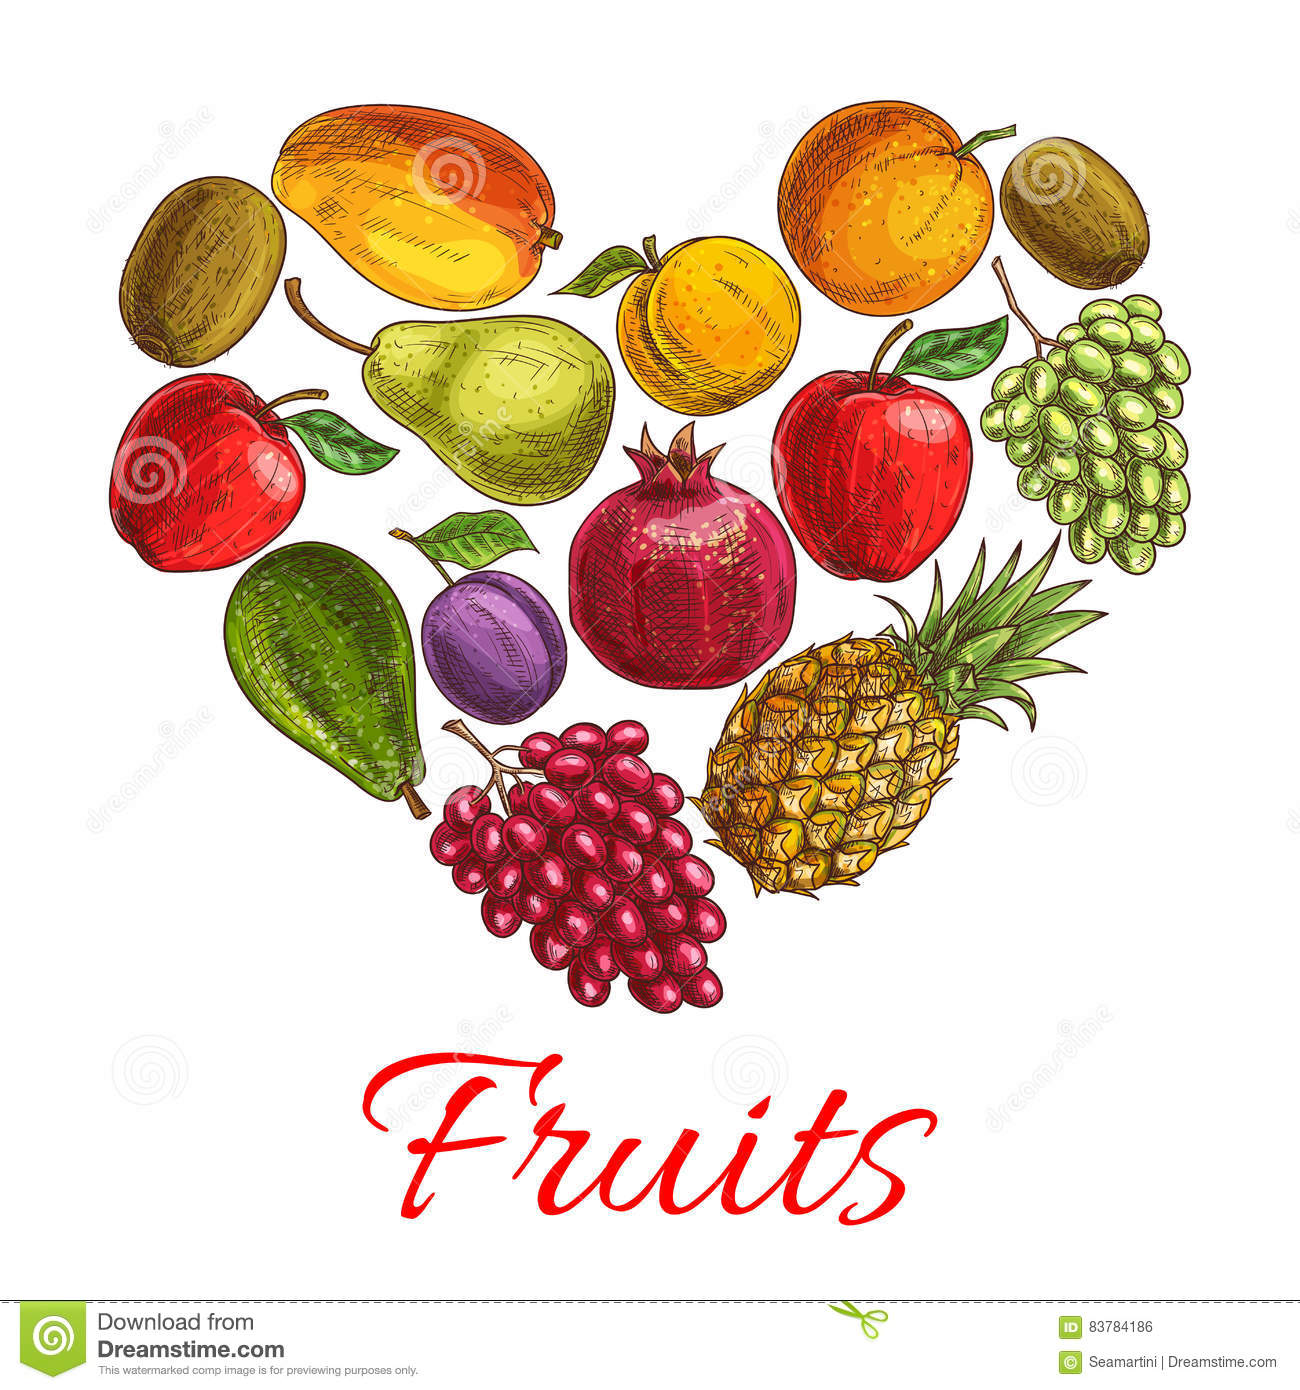 Fruit Heart Sketch Poster For Drinks Food Design Stock Vector